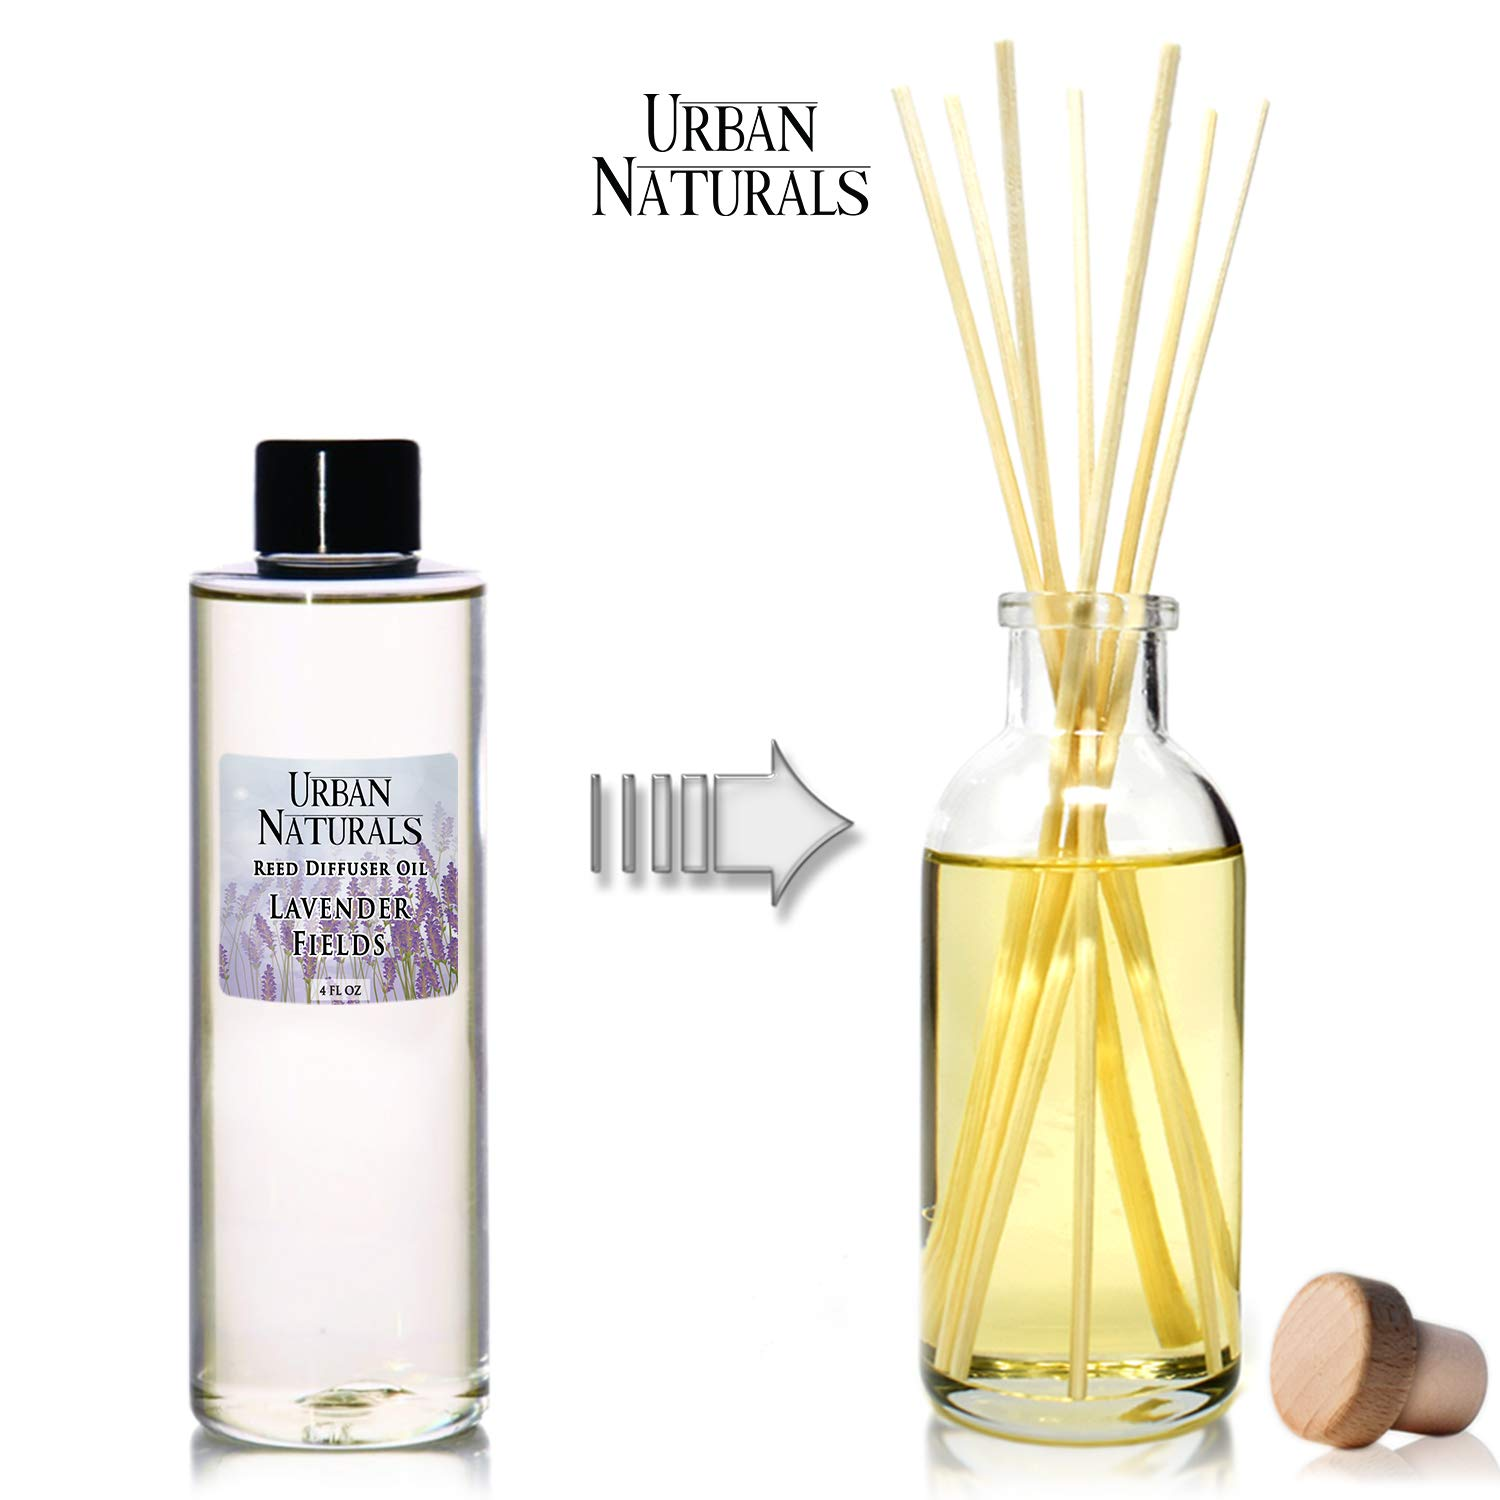 Urban Naturals Lavender Fields Essential Oil Reed Diffuser Refill & Set of Replacement Reed Sticks | Soothing, Aromatic Home Fragrance for Aromatherapy & Stress Relief | Includes a Set of Reed Sticks by Urban Naturals (Image #4)